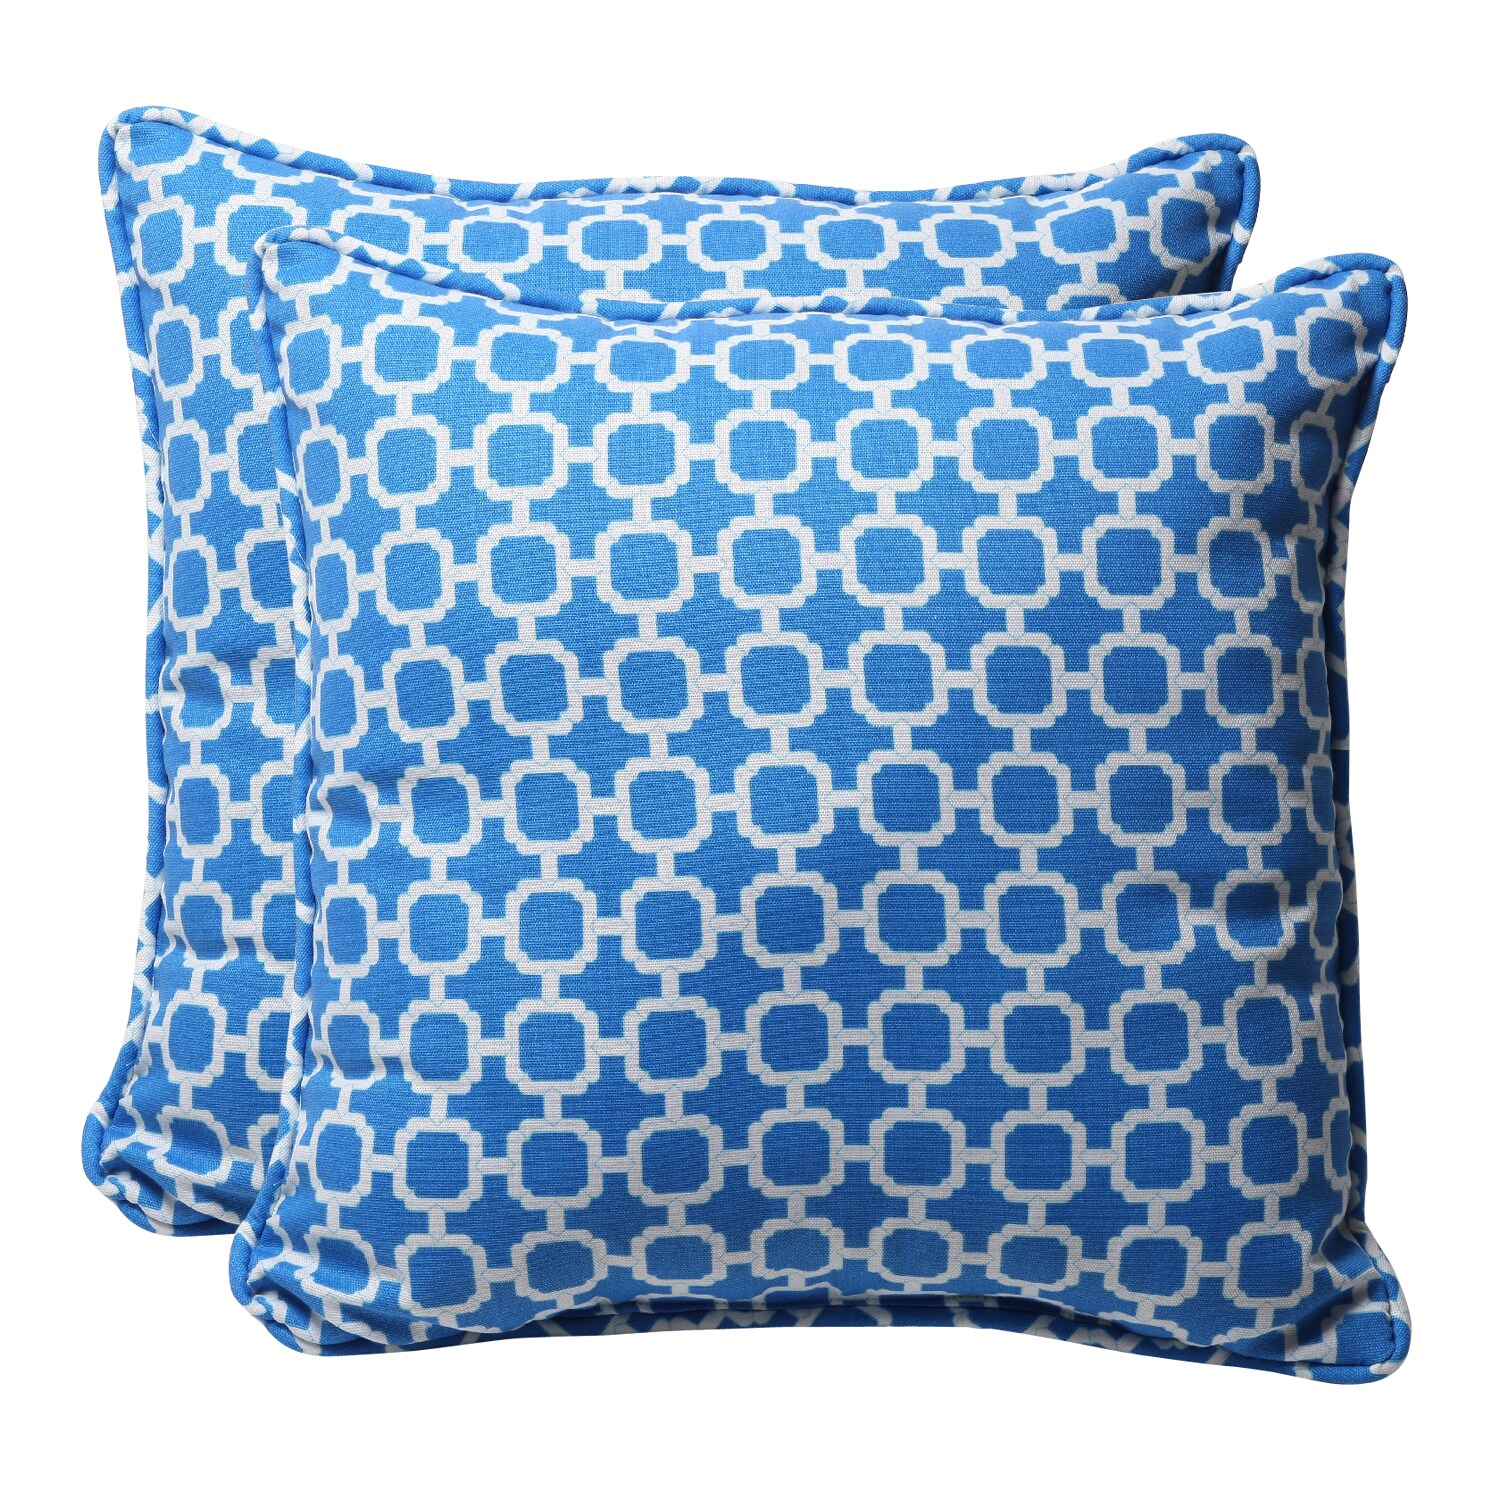 Decorative Blue/ White Geometric Square Outdoor Toss Pillows (Set of 2)